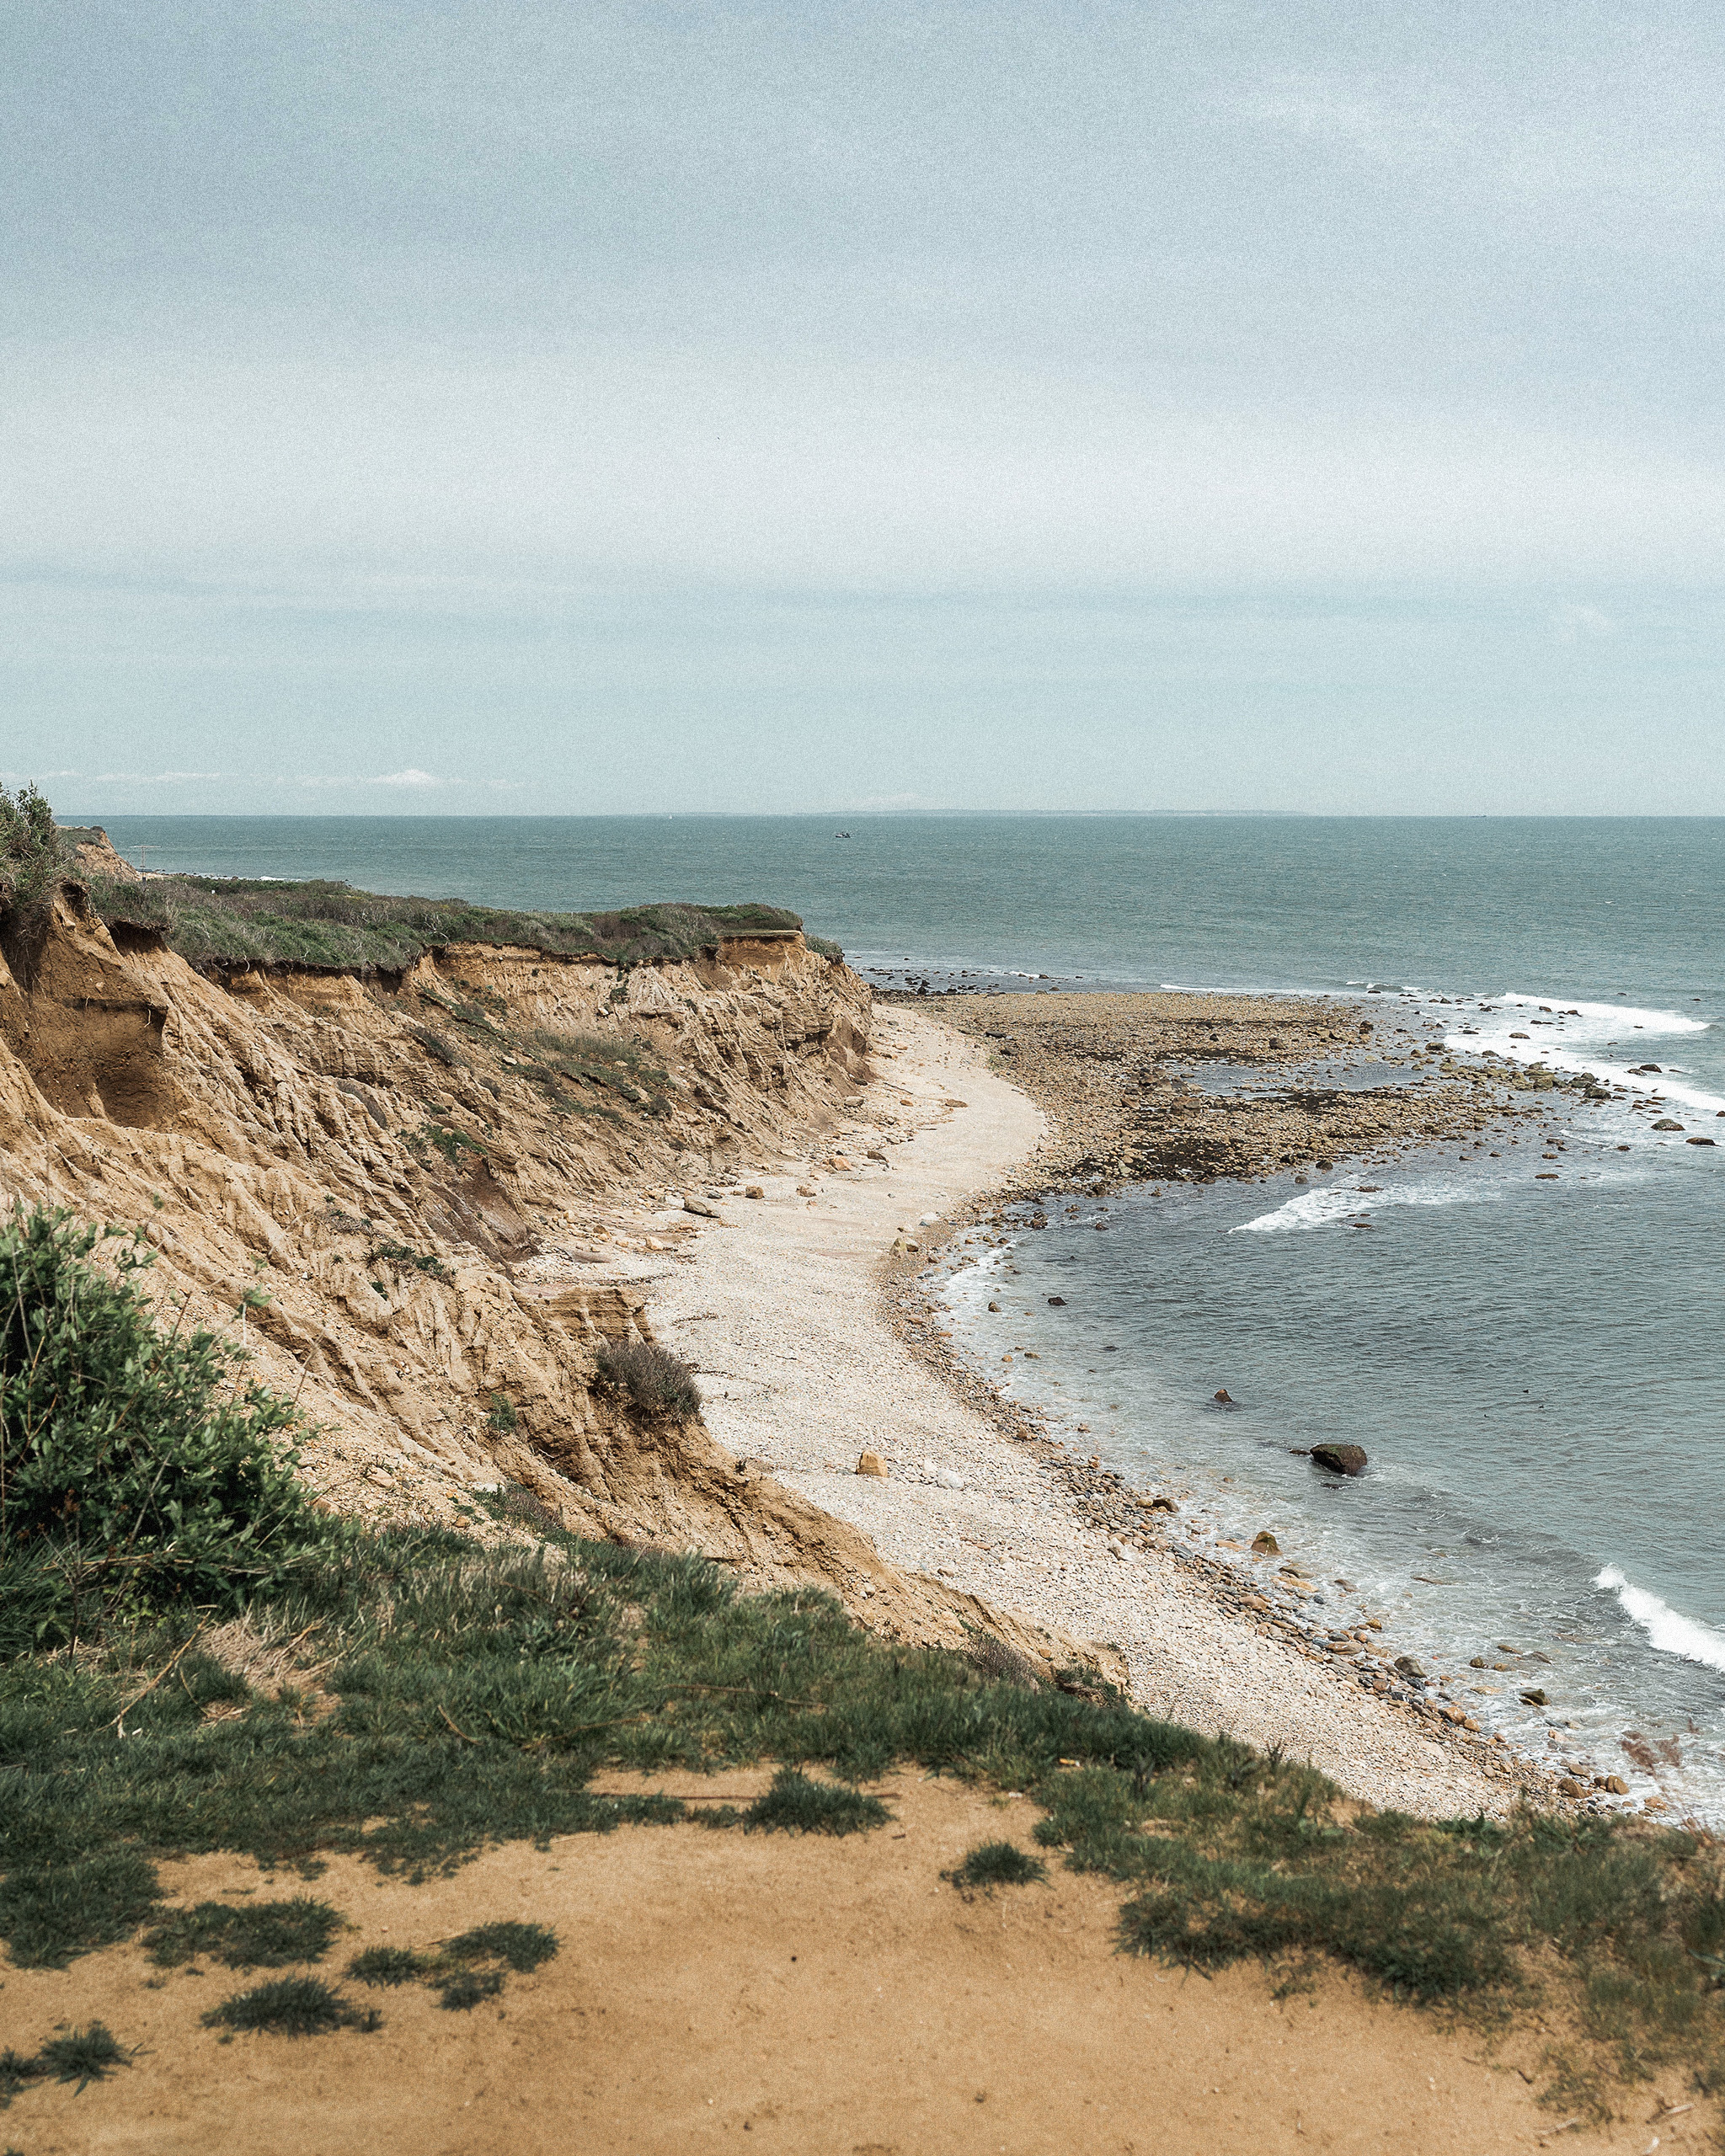 A Vegan Travel Guide to Montauk, NY – Antagonist